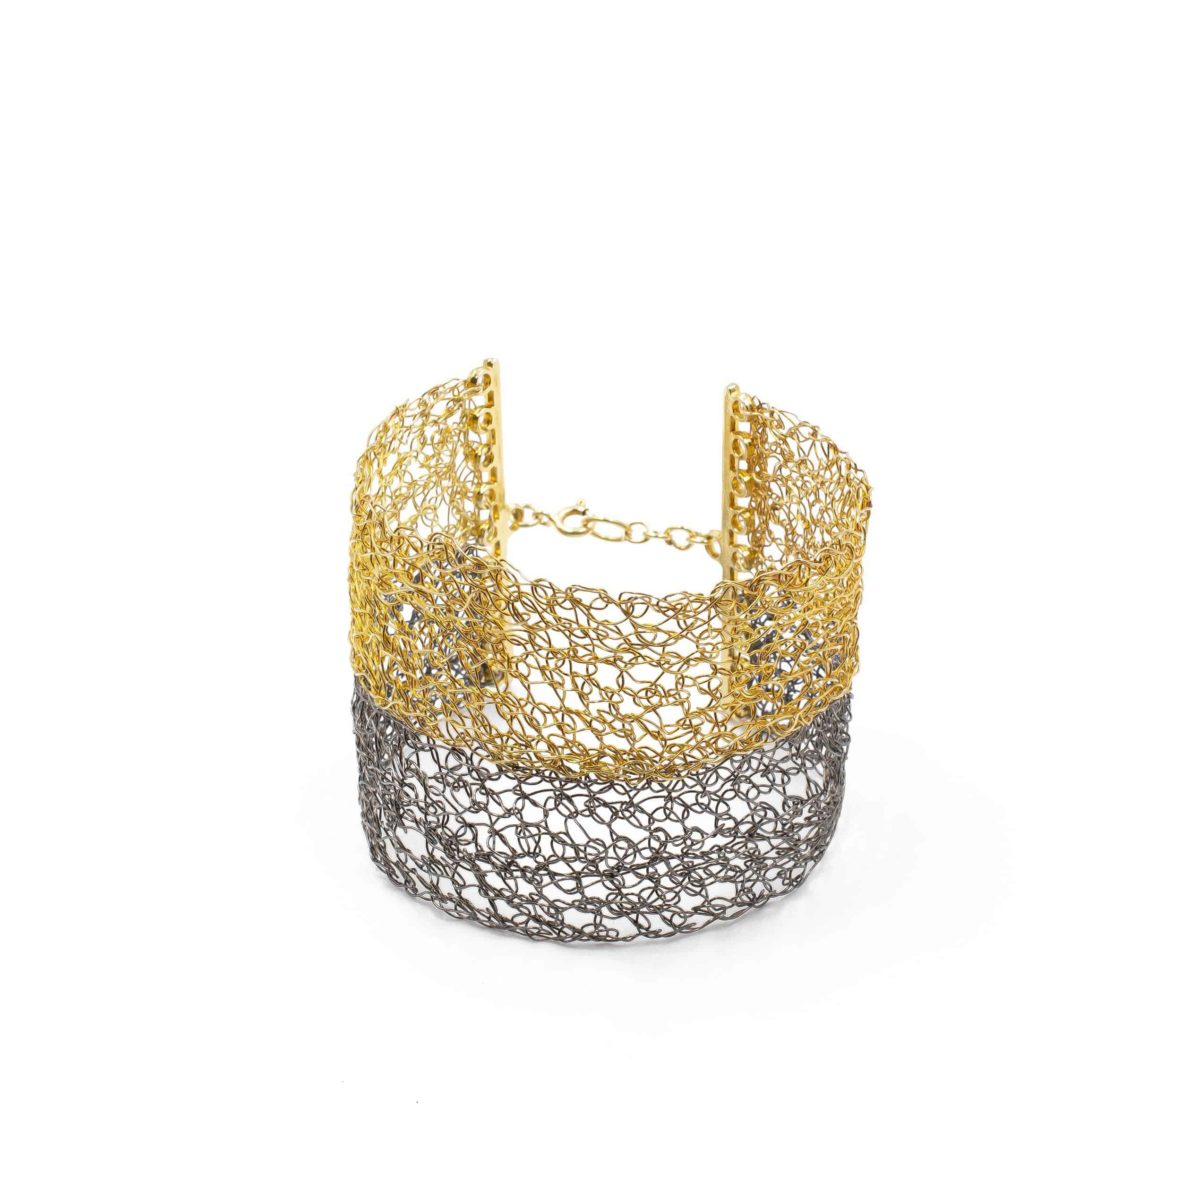 side view of gold and black rhodium cuff bracelet for women